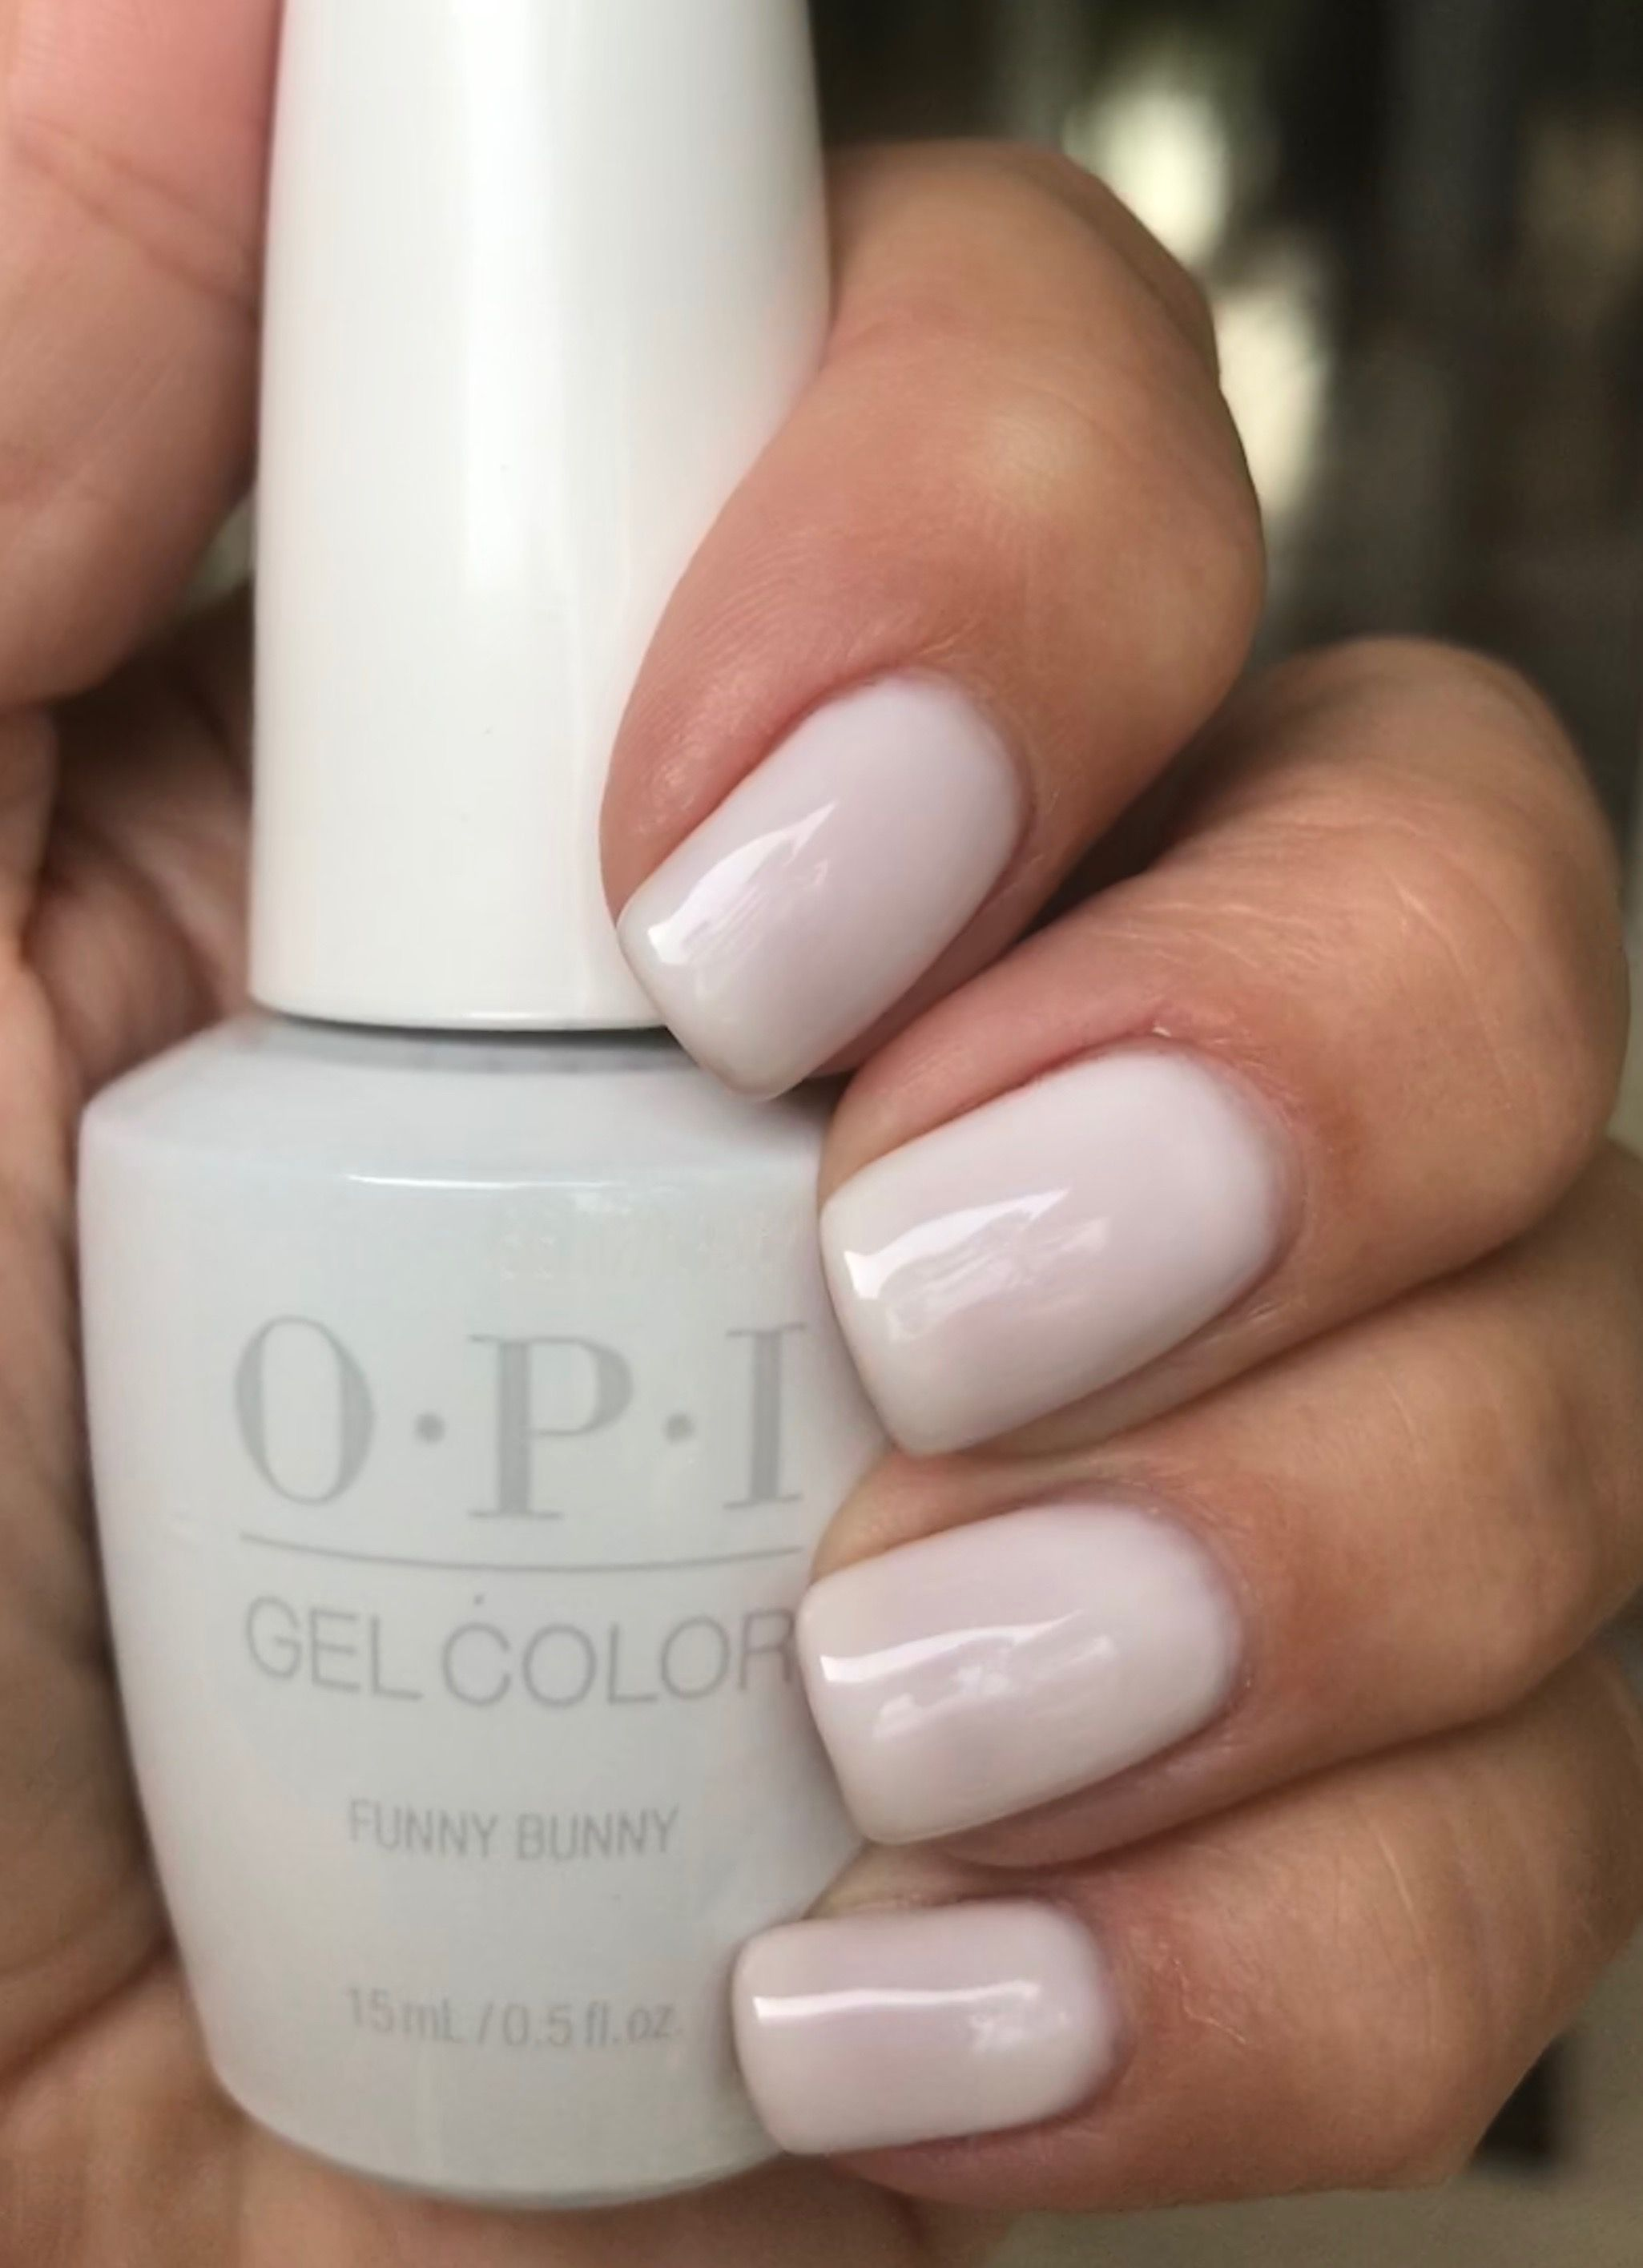 Opi Funny Bunny Over Don T Bossa Nova Me Around To Keep It From Being Streaky Opi Gel Nails Wedding Acrylic Nails Opi Nail Colors